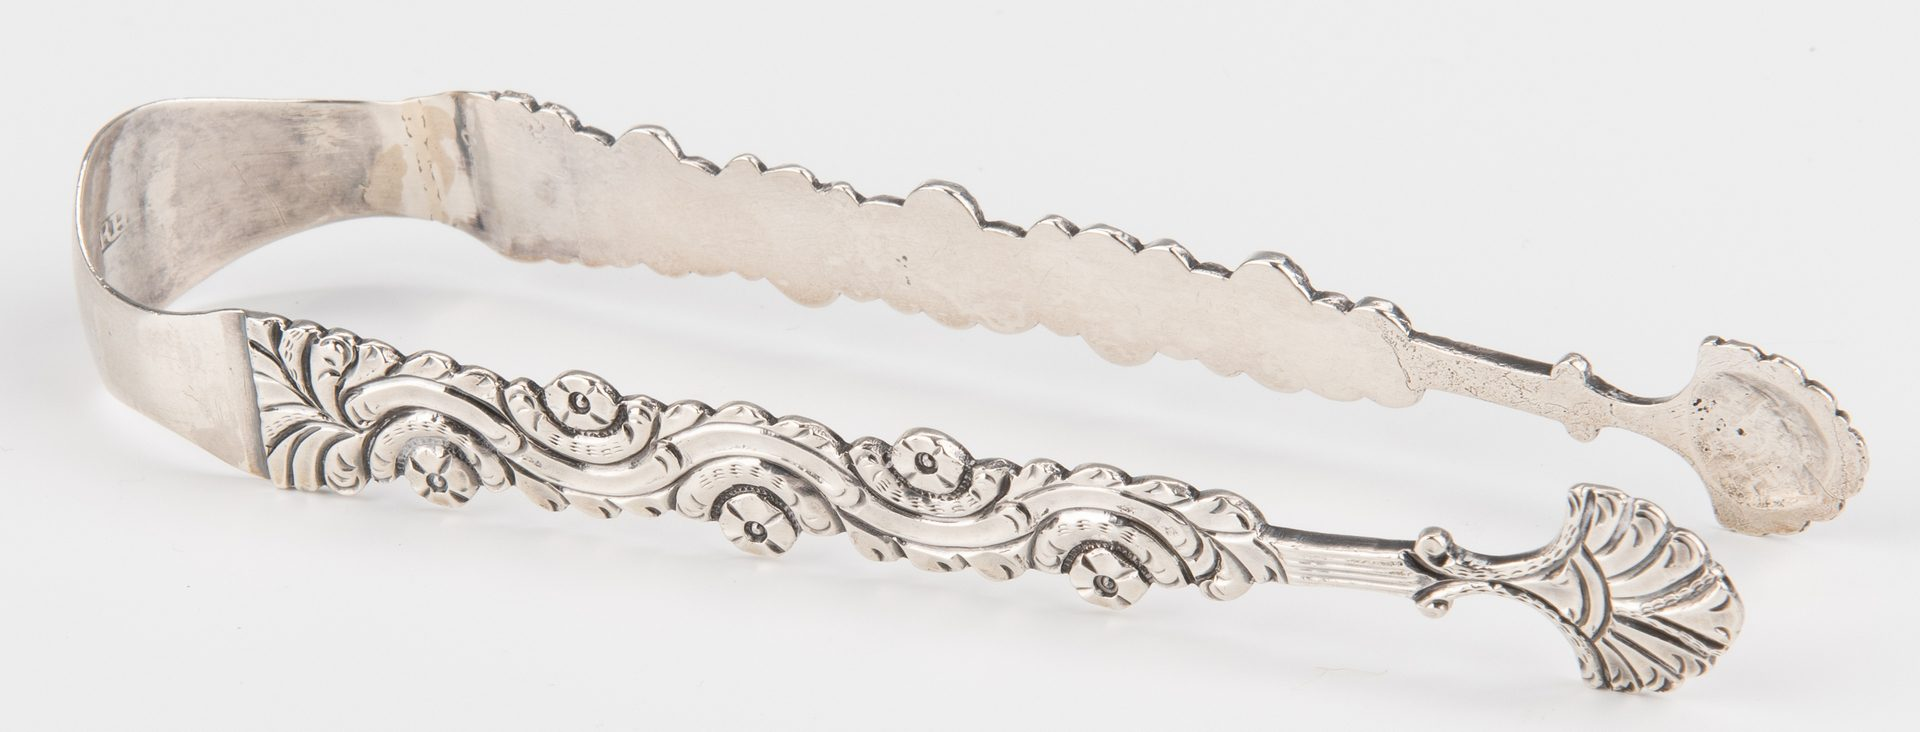 Lot 211: American 18th c. silver tongs